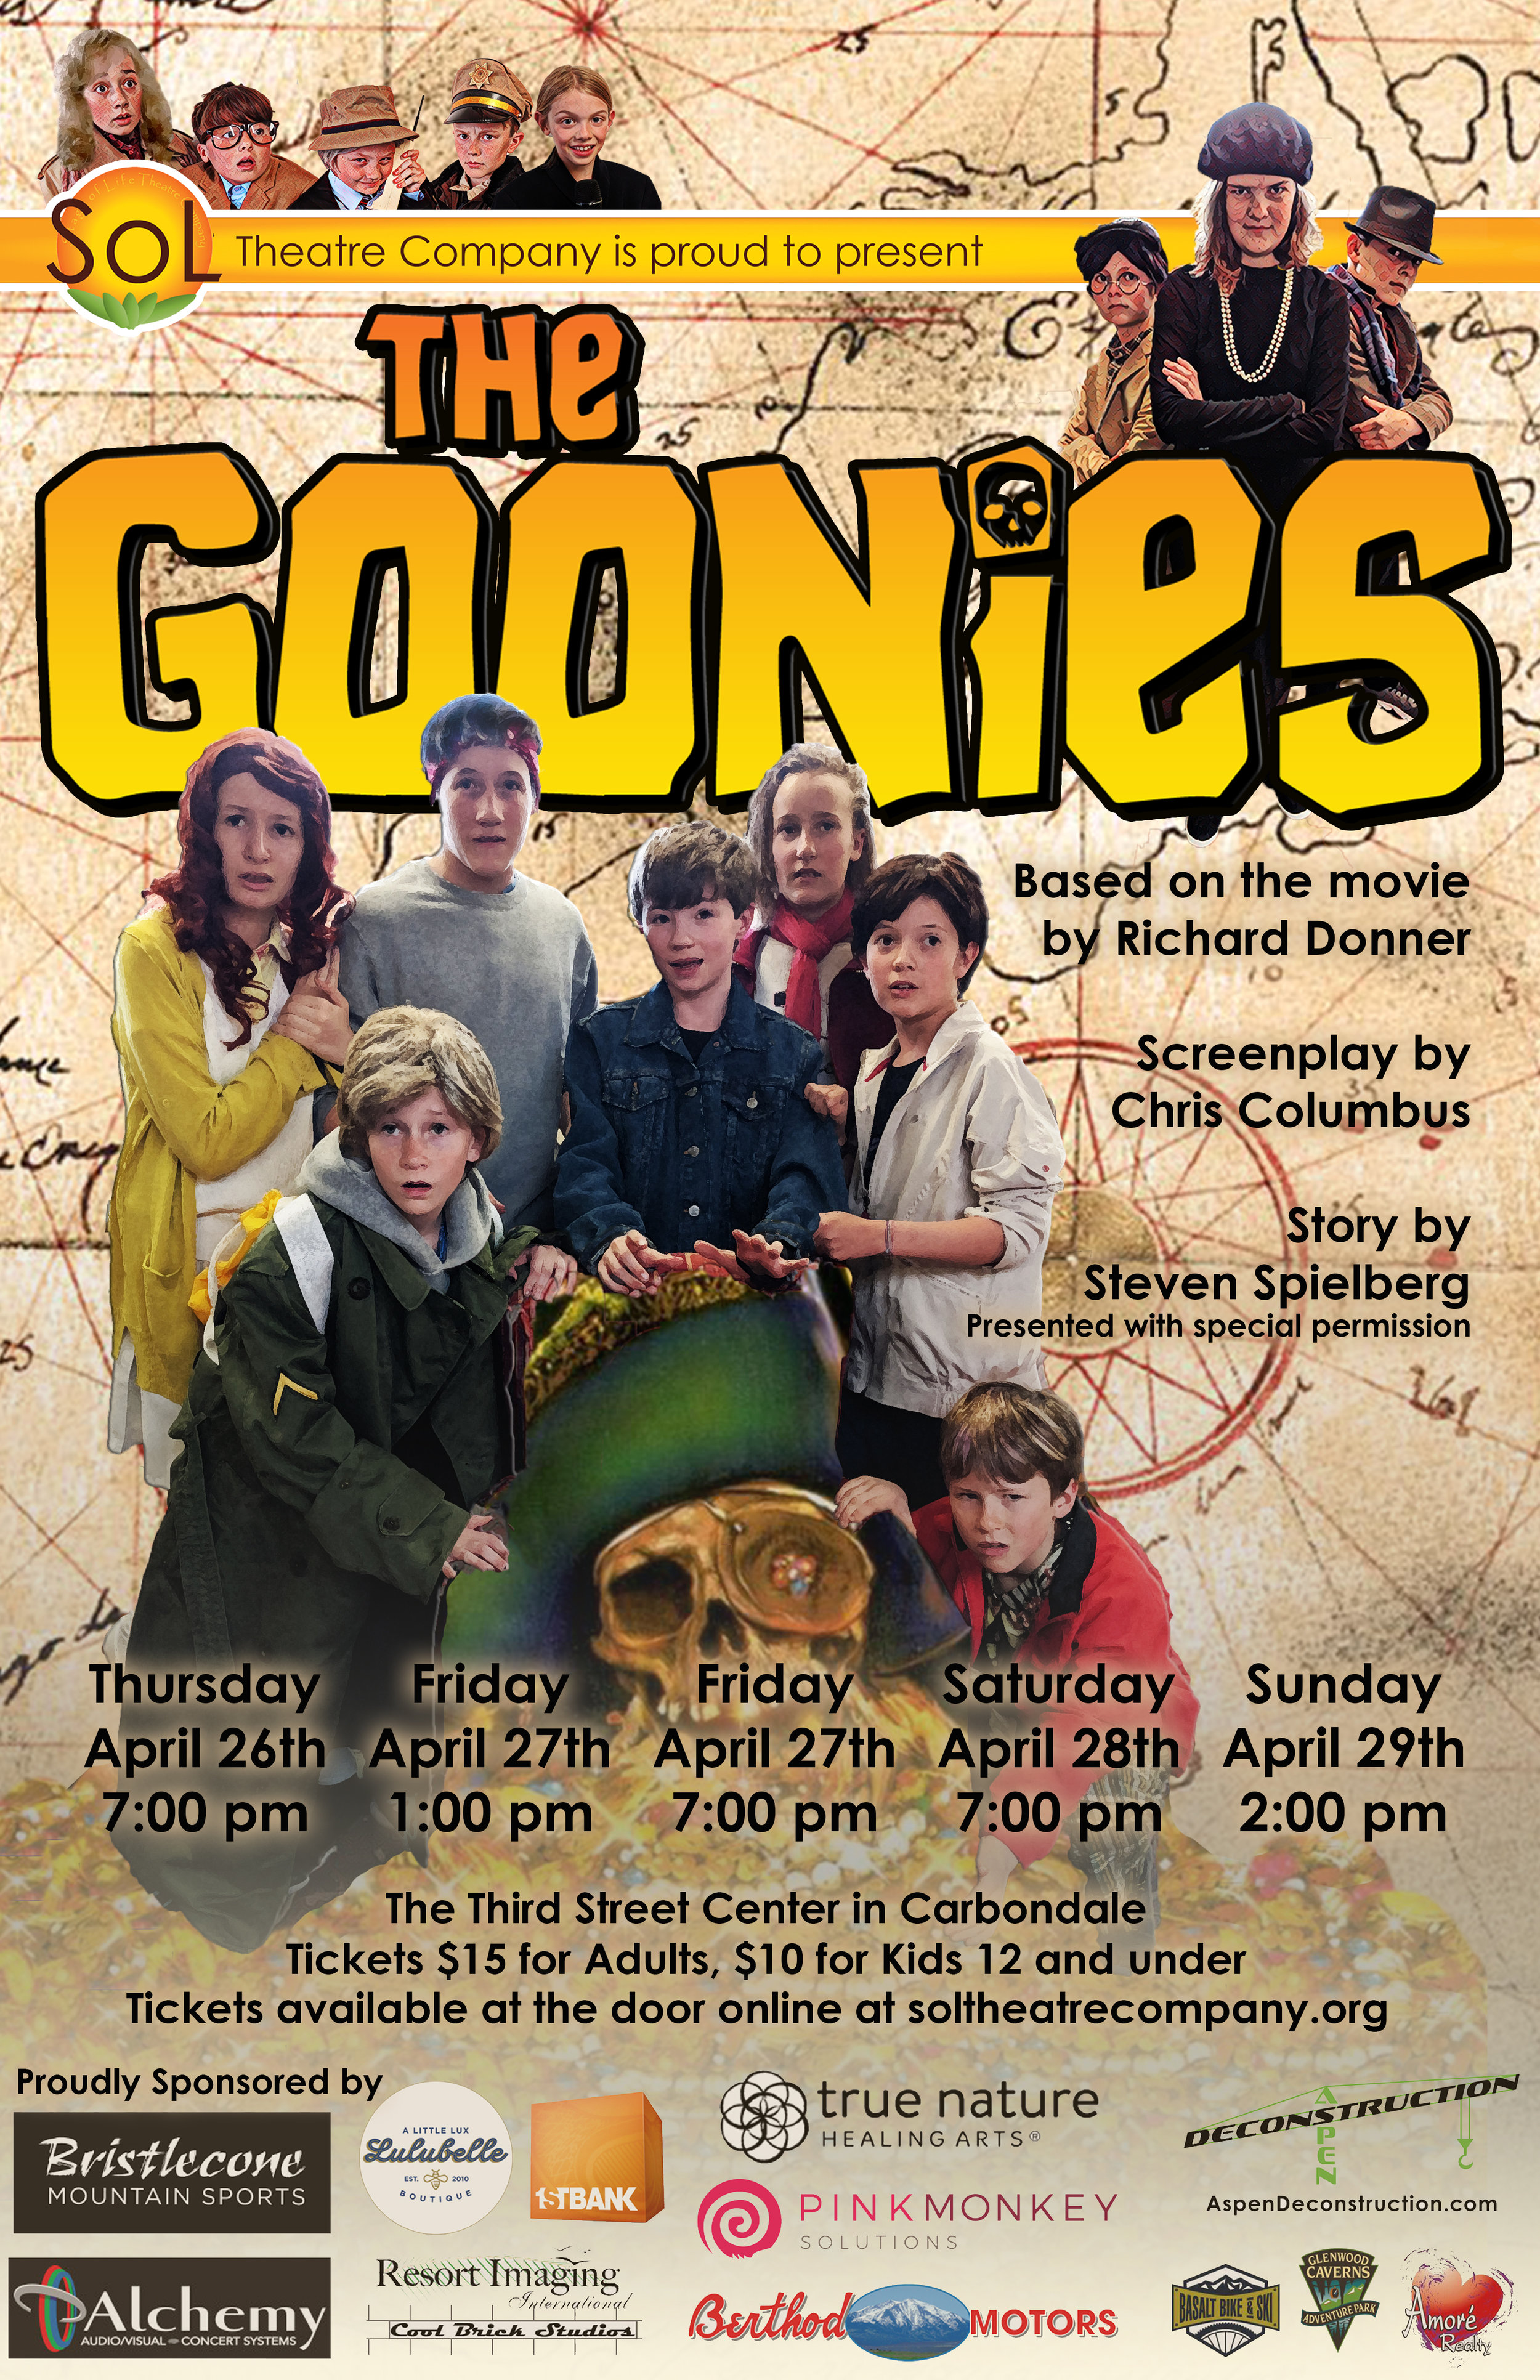 The Goonies    April 26th - 29th   In order to save their home from foreclosure, a group of misfits set out to find a pirate's ancient valuable treasure.